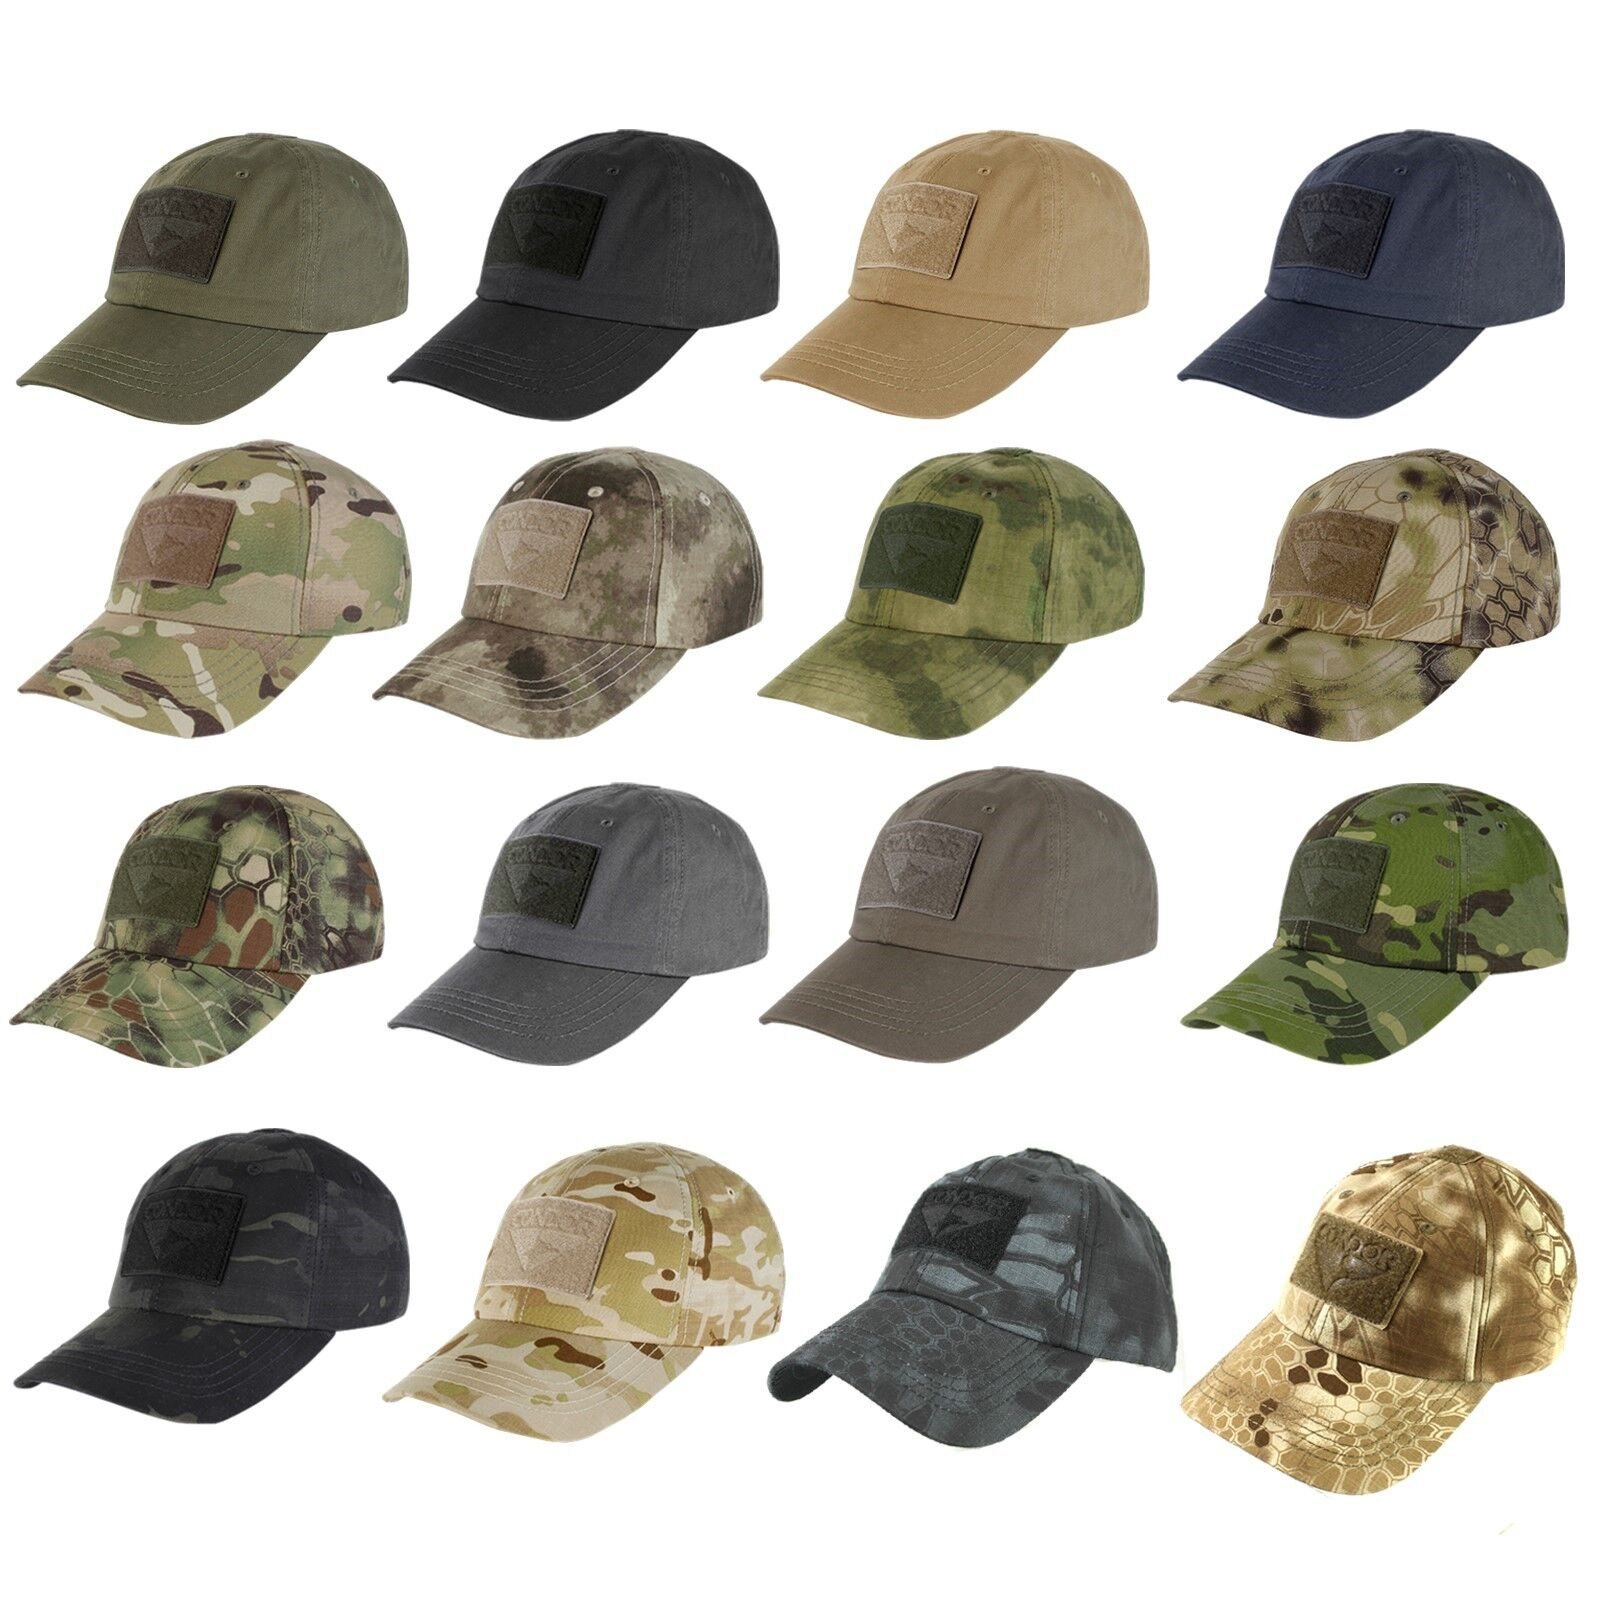 Condor TC Tactical Operator Baseball Style Military Hunting Hiking Patch  Cap Hat a50a2196cb8